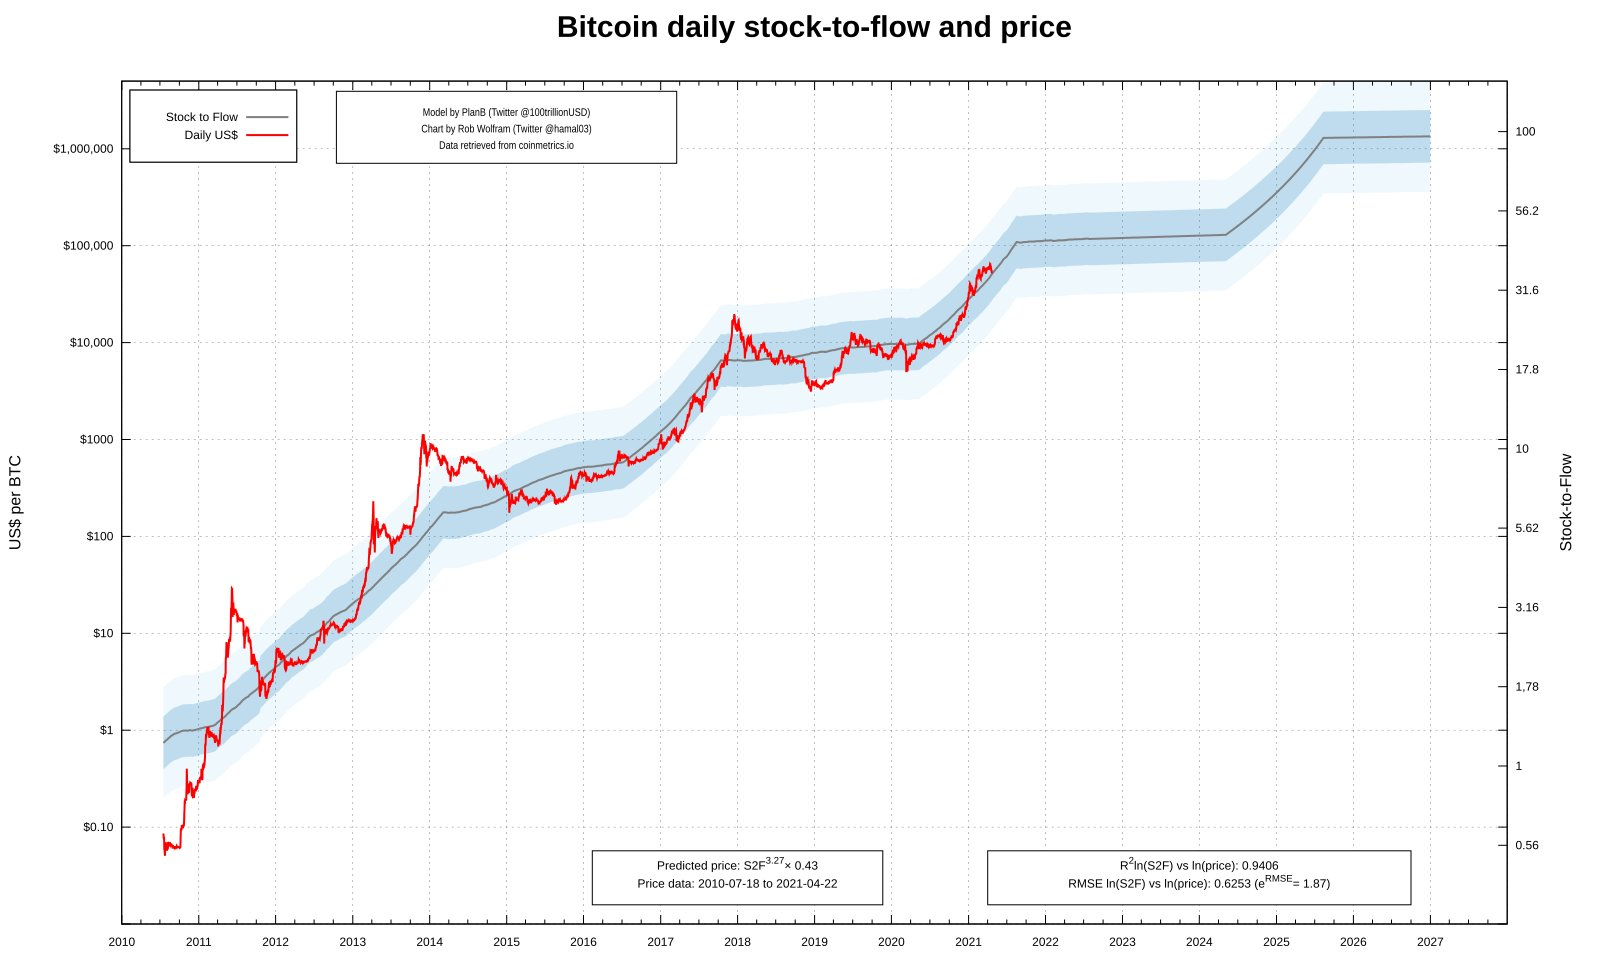 Bitcoin price 'relief' move to K pushes BTC below stock-to-flow trajectory